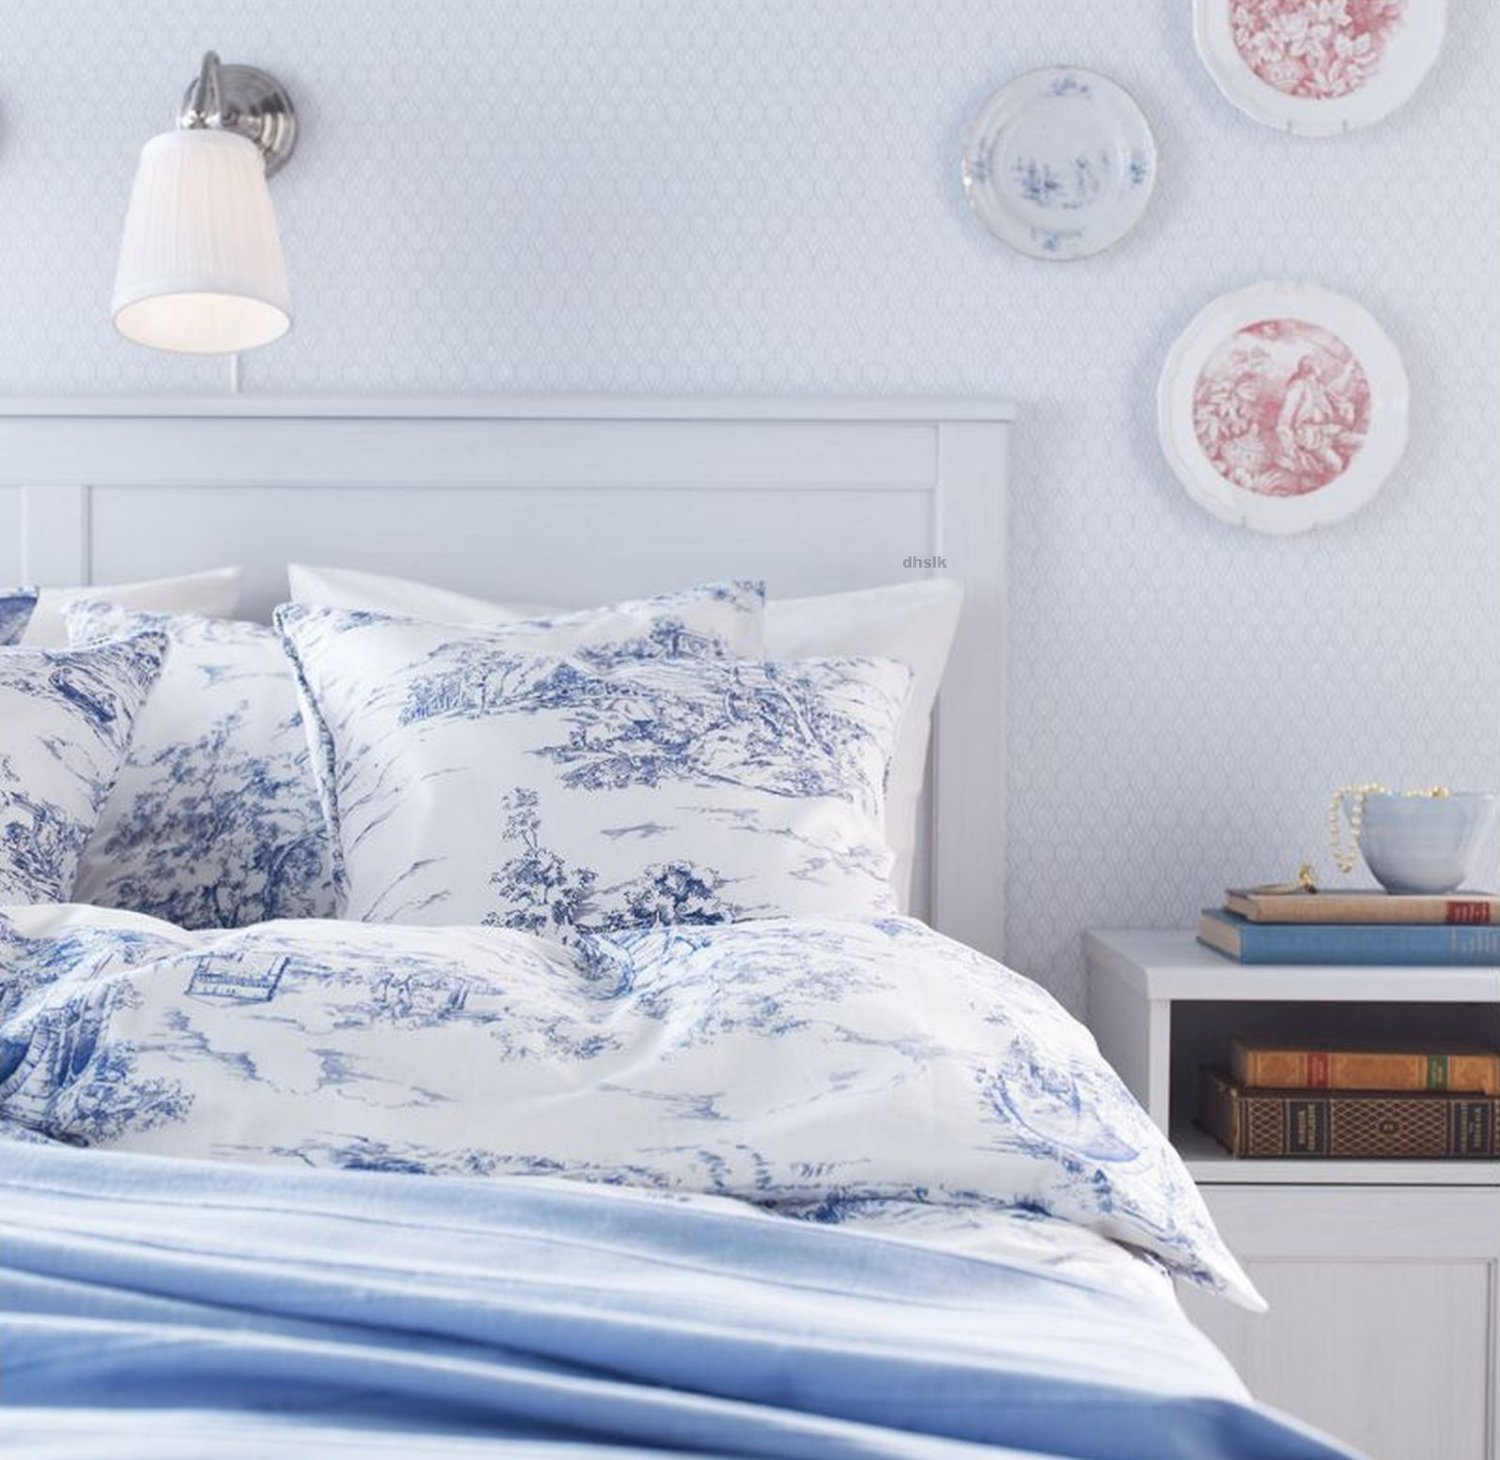 Ikea Blue Bed Of Ikea Emmie Land Queen Duvet Cover Pillowcases Set Blue